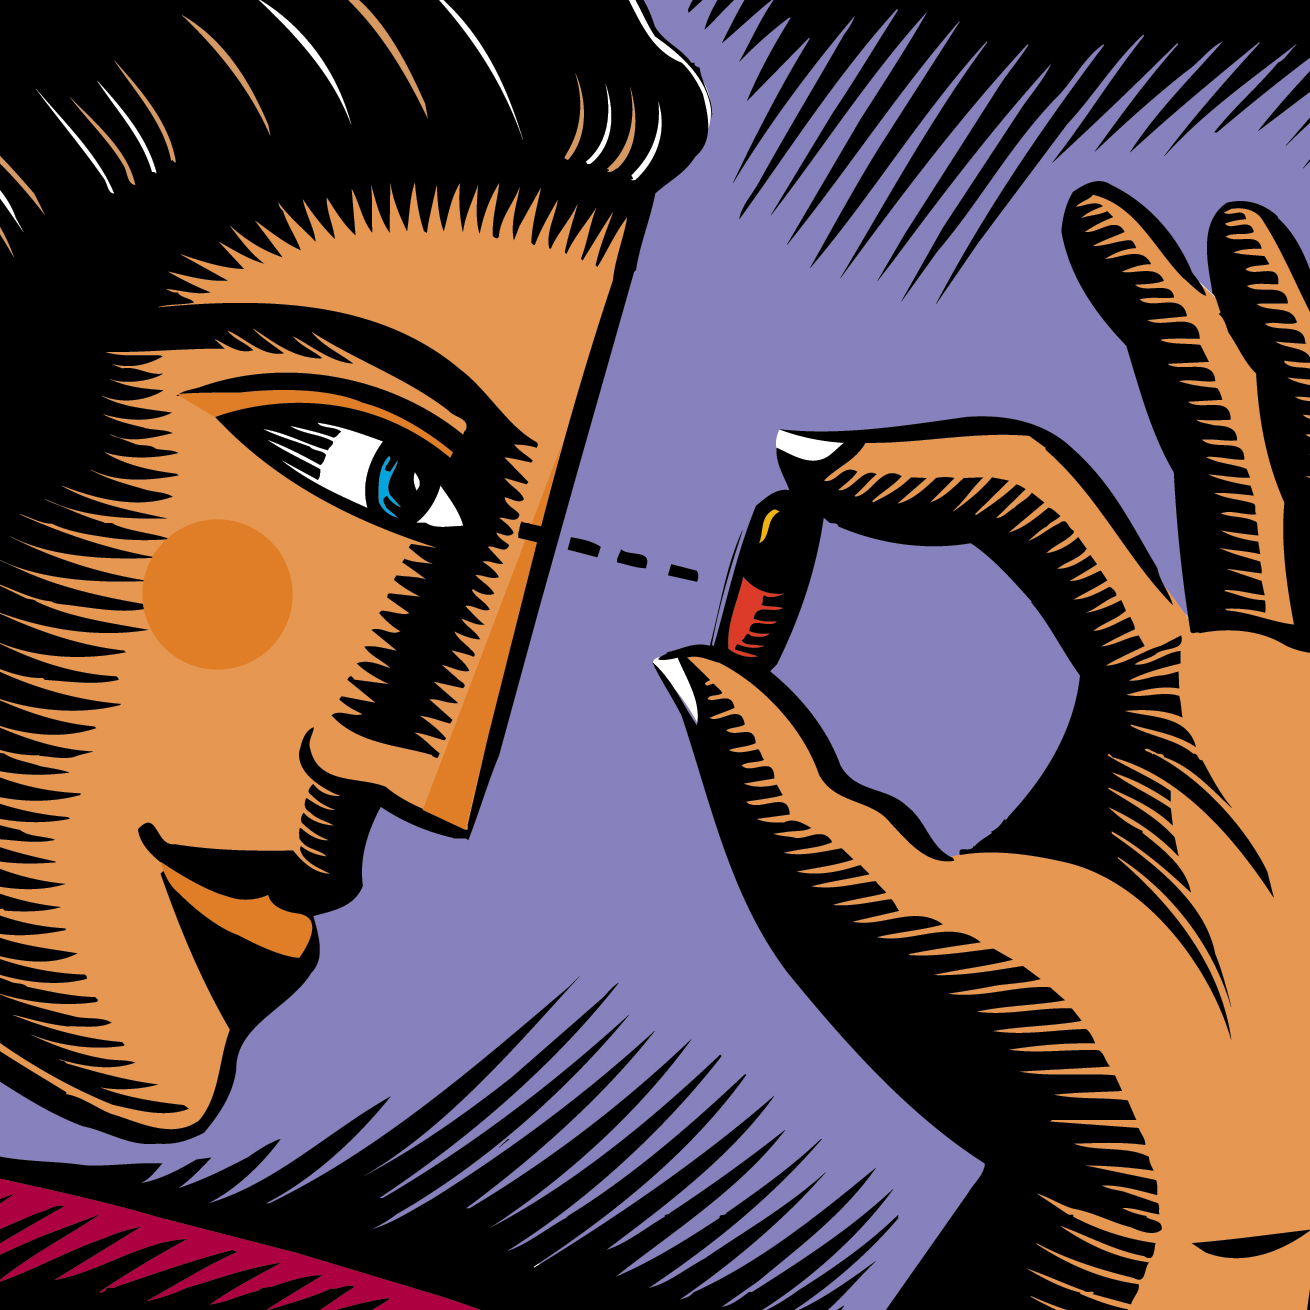 Oral Contraceptive Use Leads to Better Outcomes in Patients With Ovarian Cancer